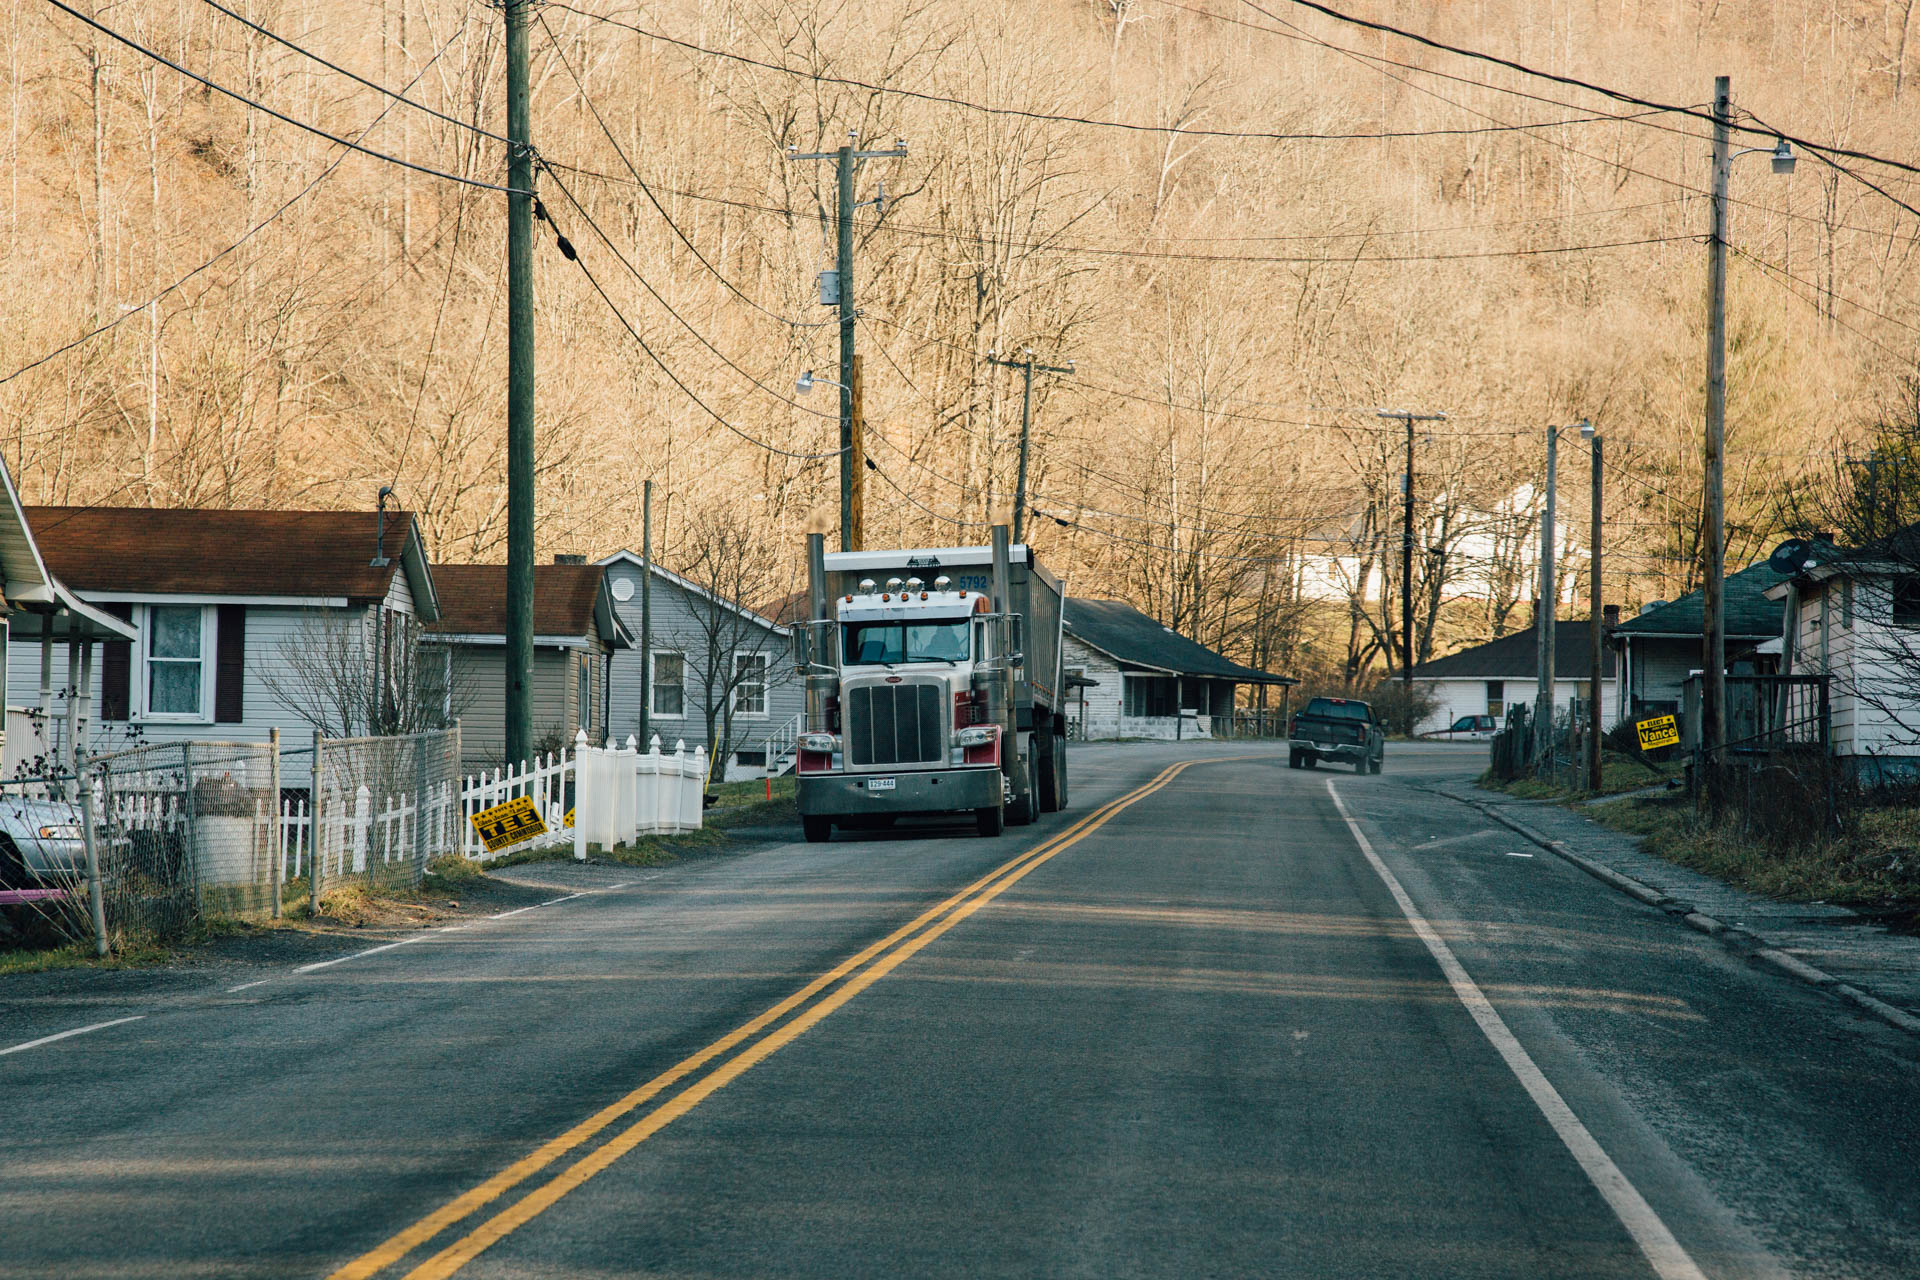 coal-peterbilt-semi-truck-narrow-roads-along-homes-maybeury-wv